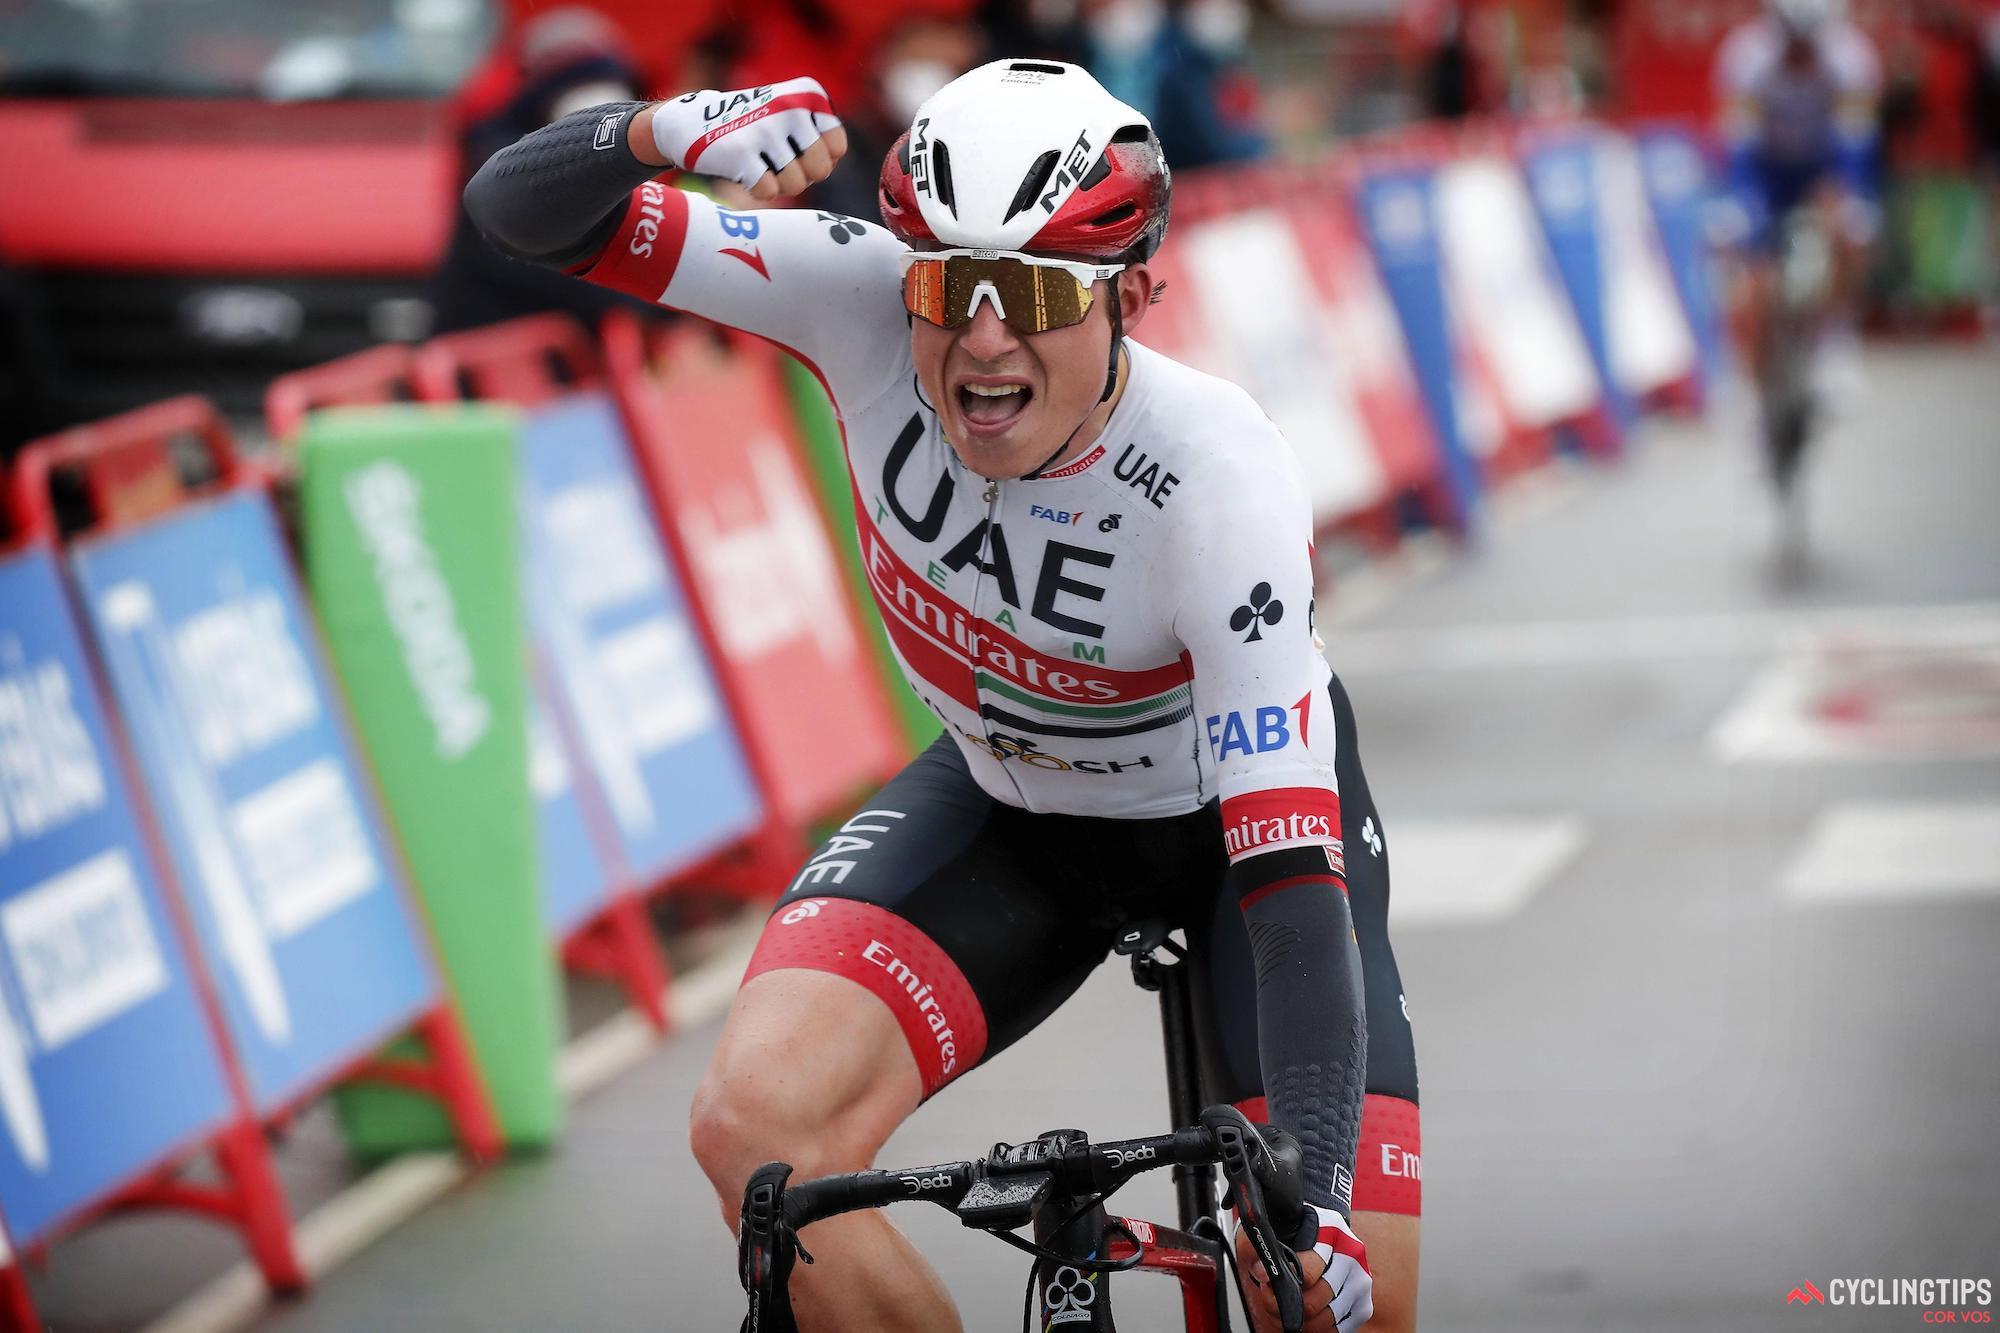 Philipsen sprints to victory on Vuelta stage 15: Daily News Digest